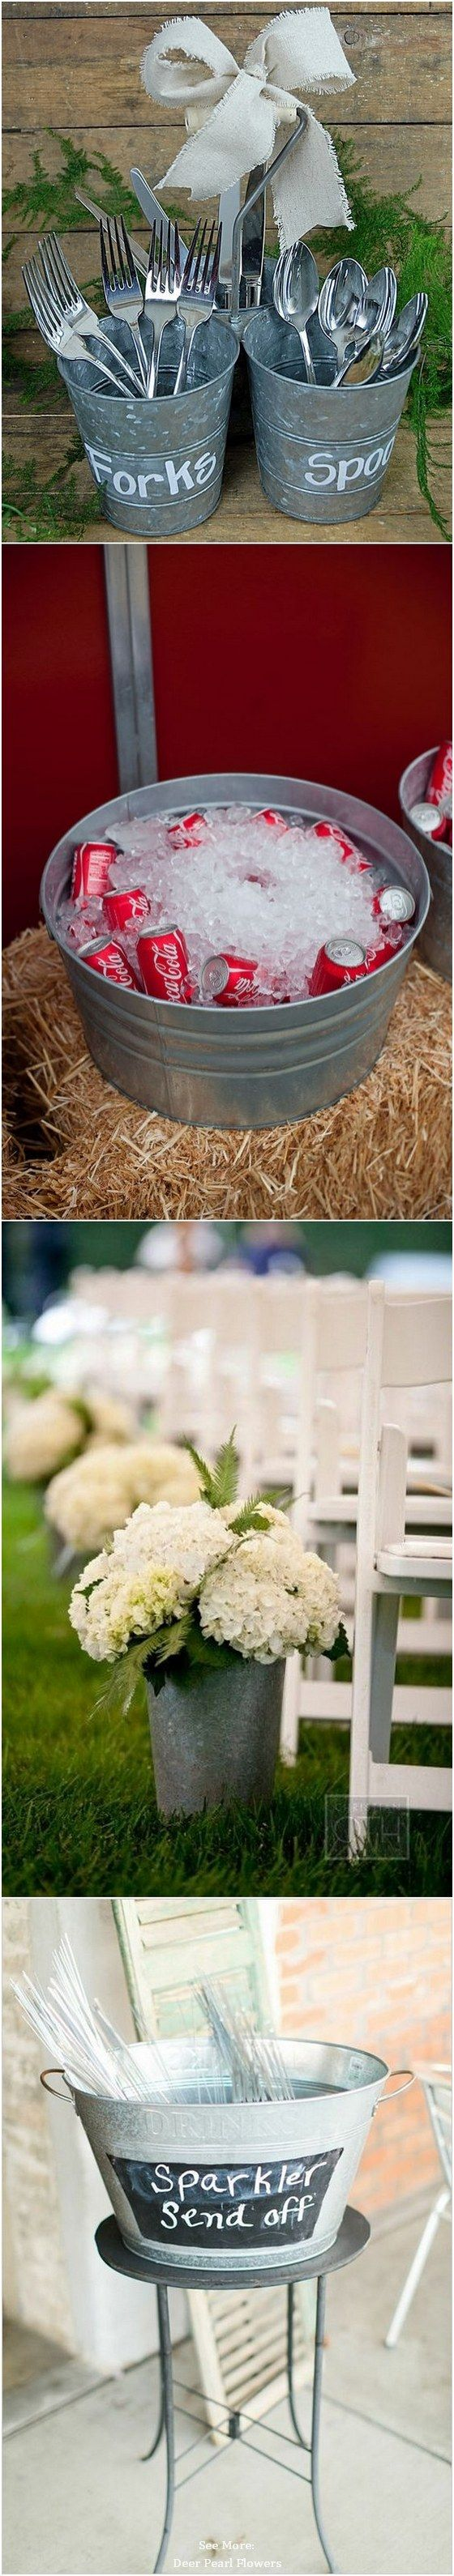 40 rustic country buckets tubs wedding ideas tubs buckets and